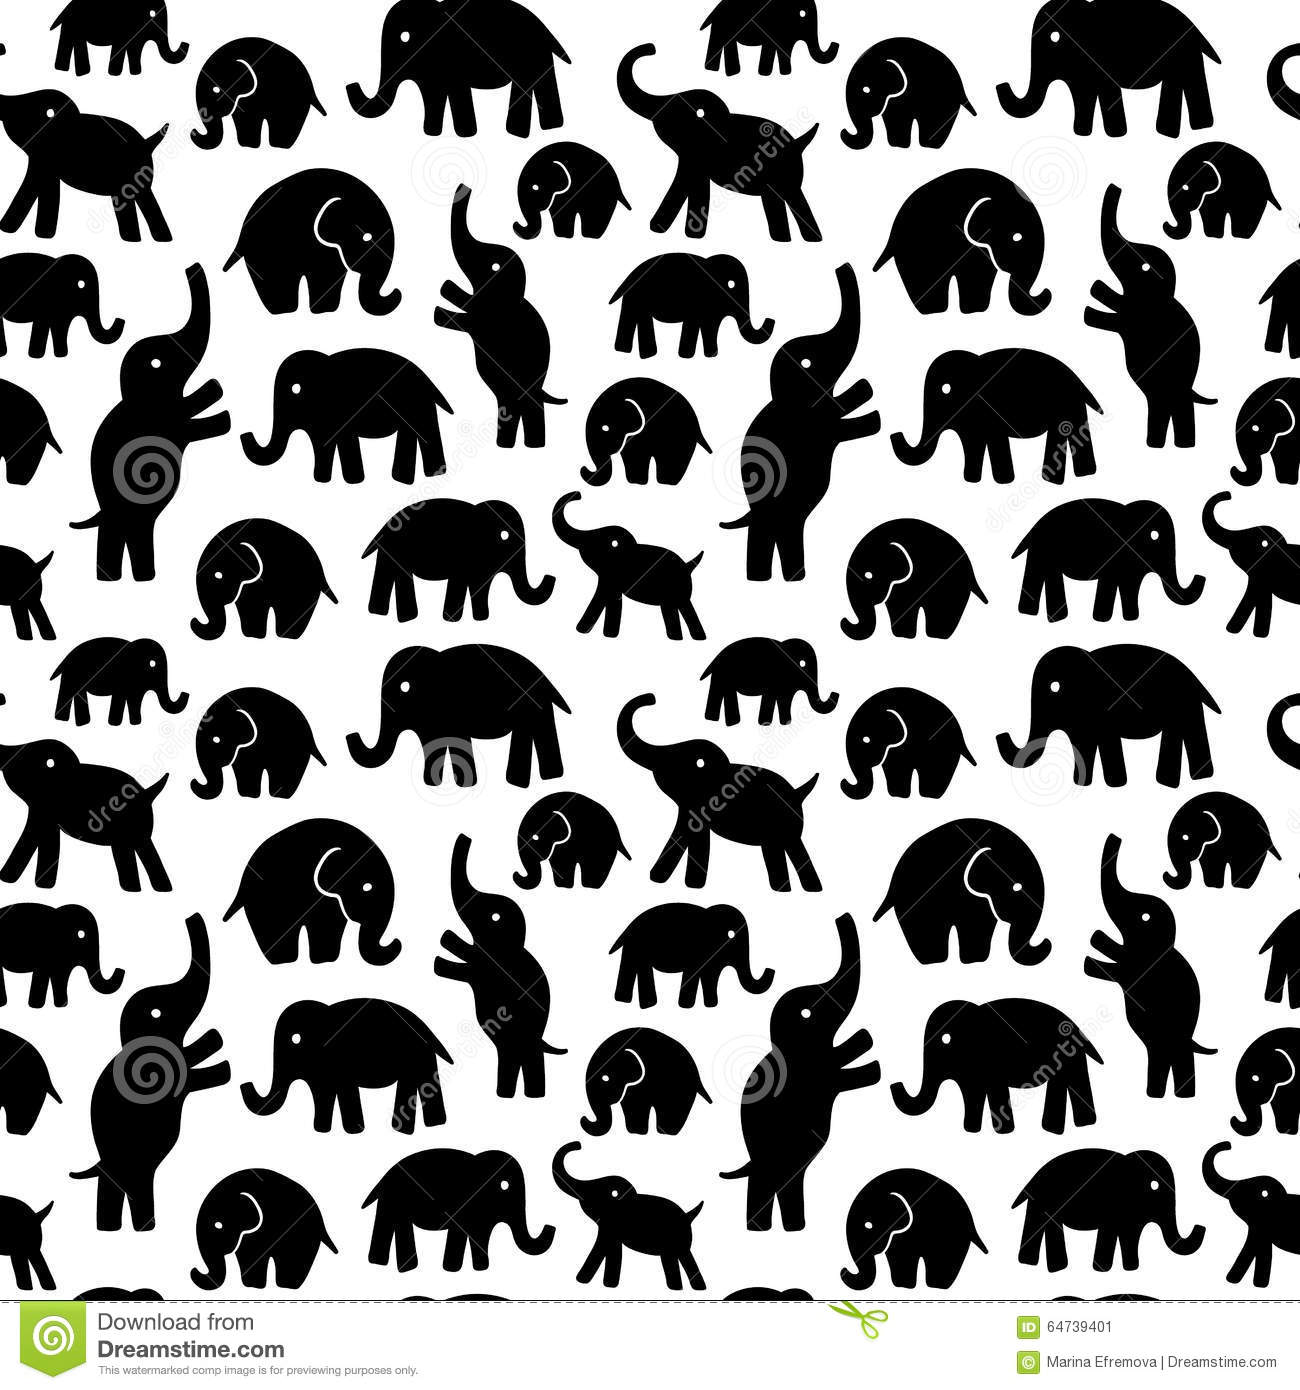 Book Cover Background Zero ~ Seamless pattern with colorful elephants for textile book